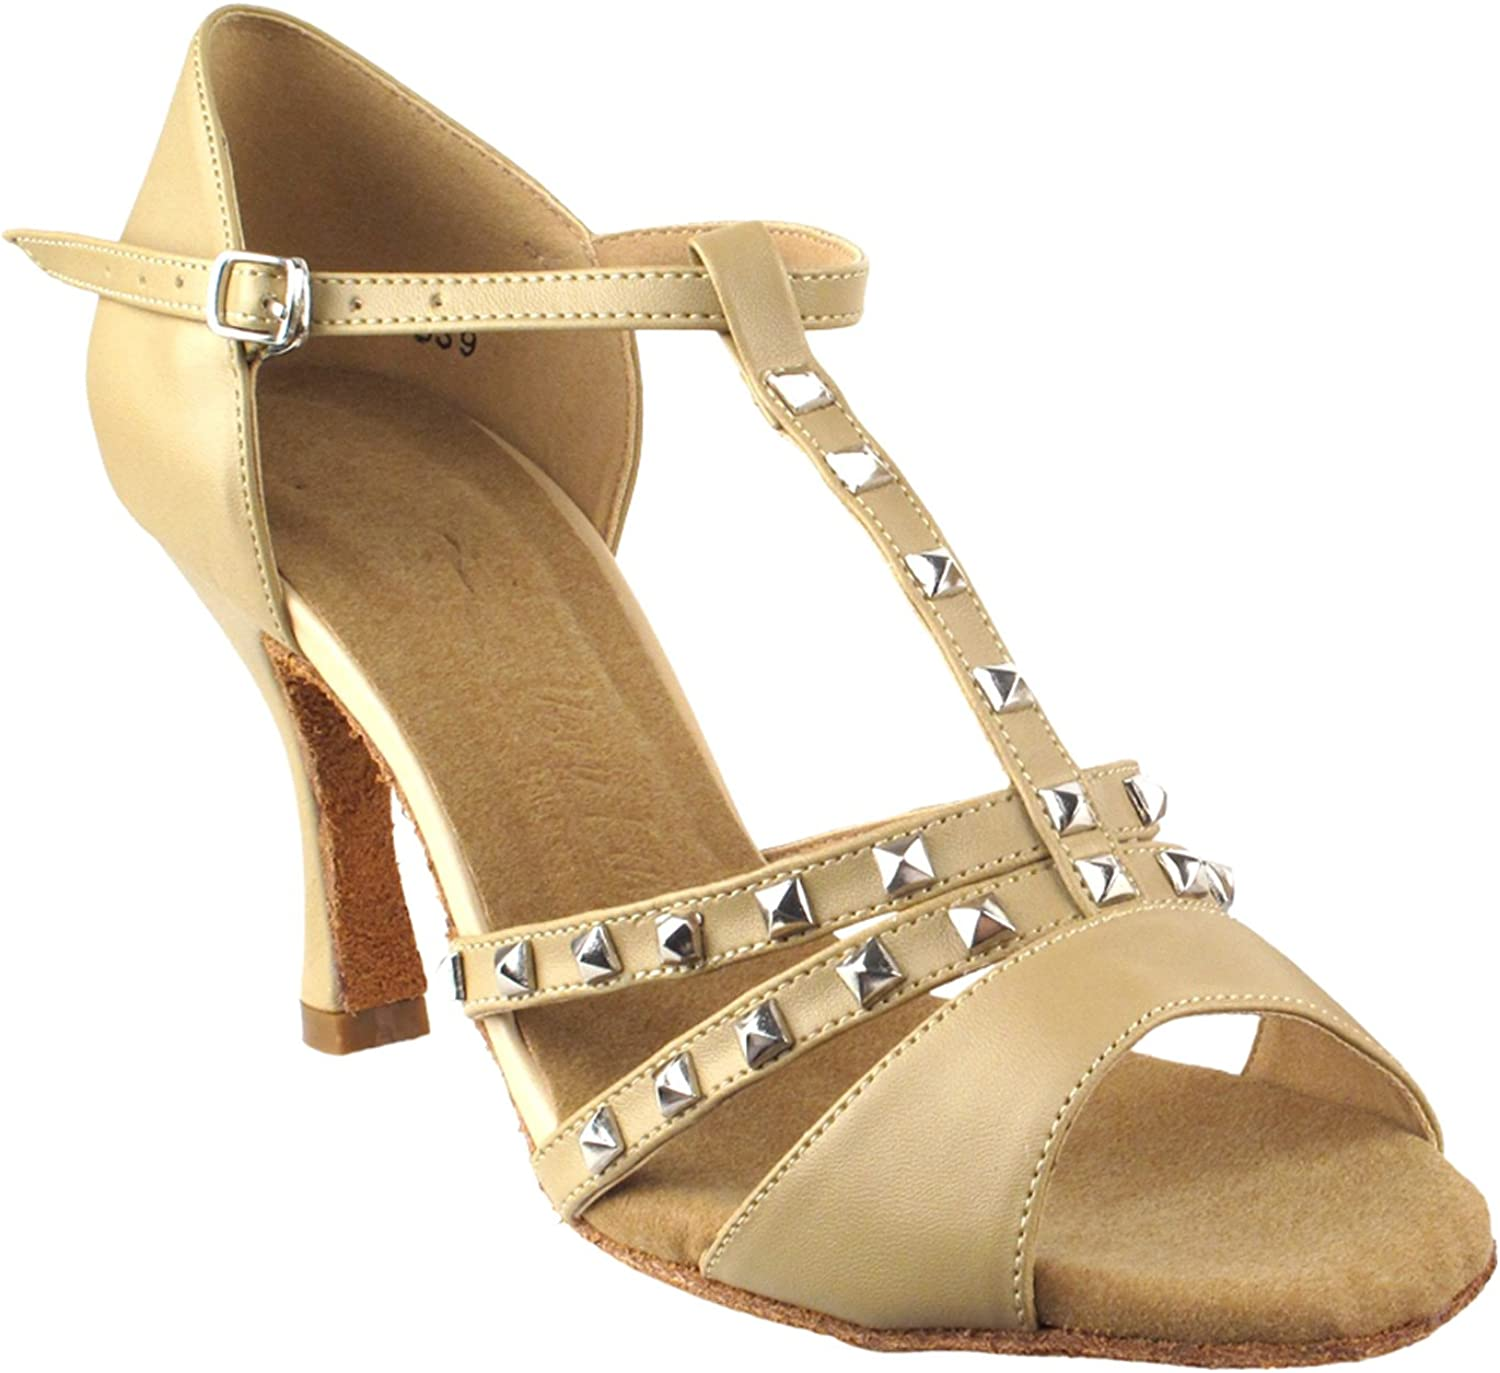 Party Party Beige Dance Shoes: SERA7012 Tan Leather 3